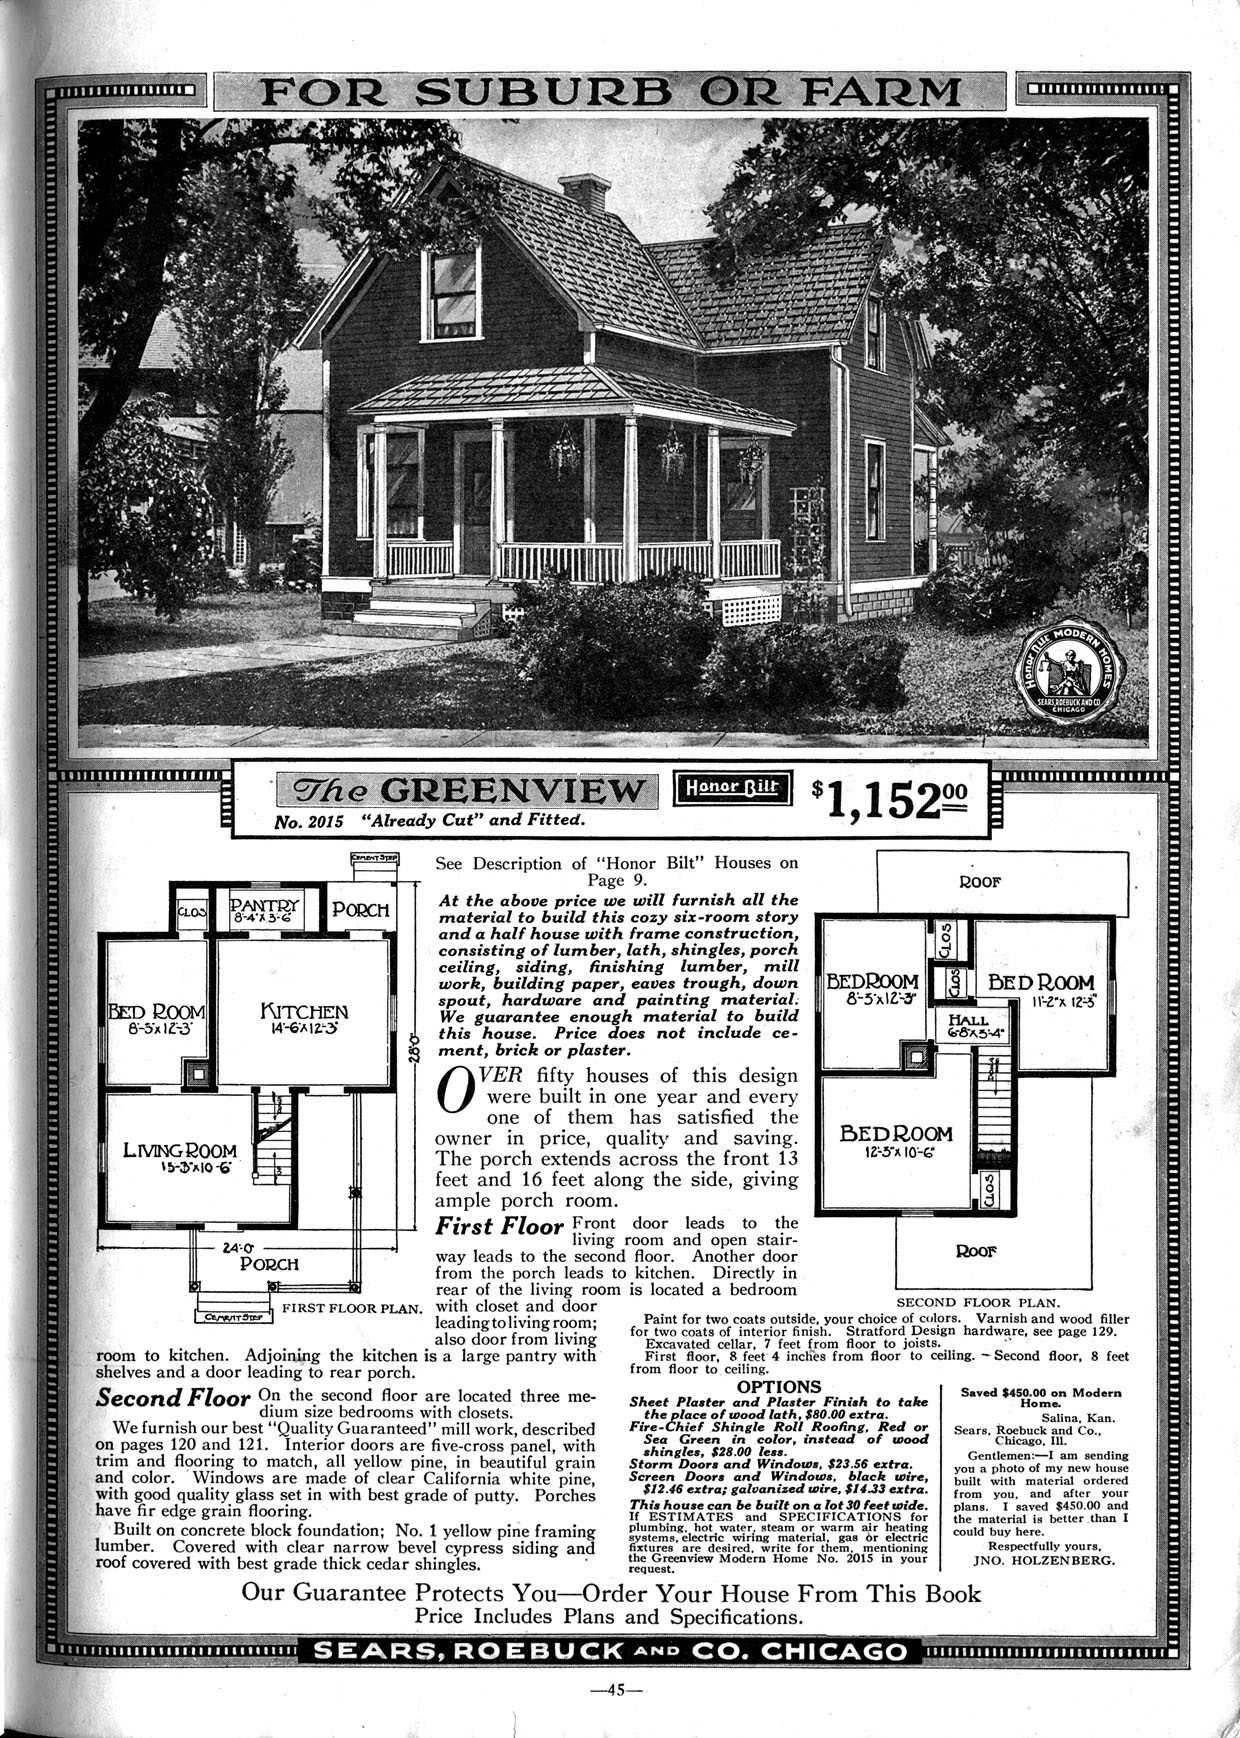 1900 sears house plans searsarchives com sears homes 1915 1920 rh pinterest com